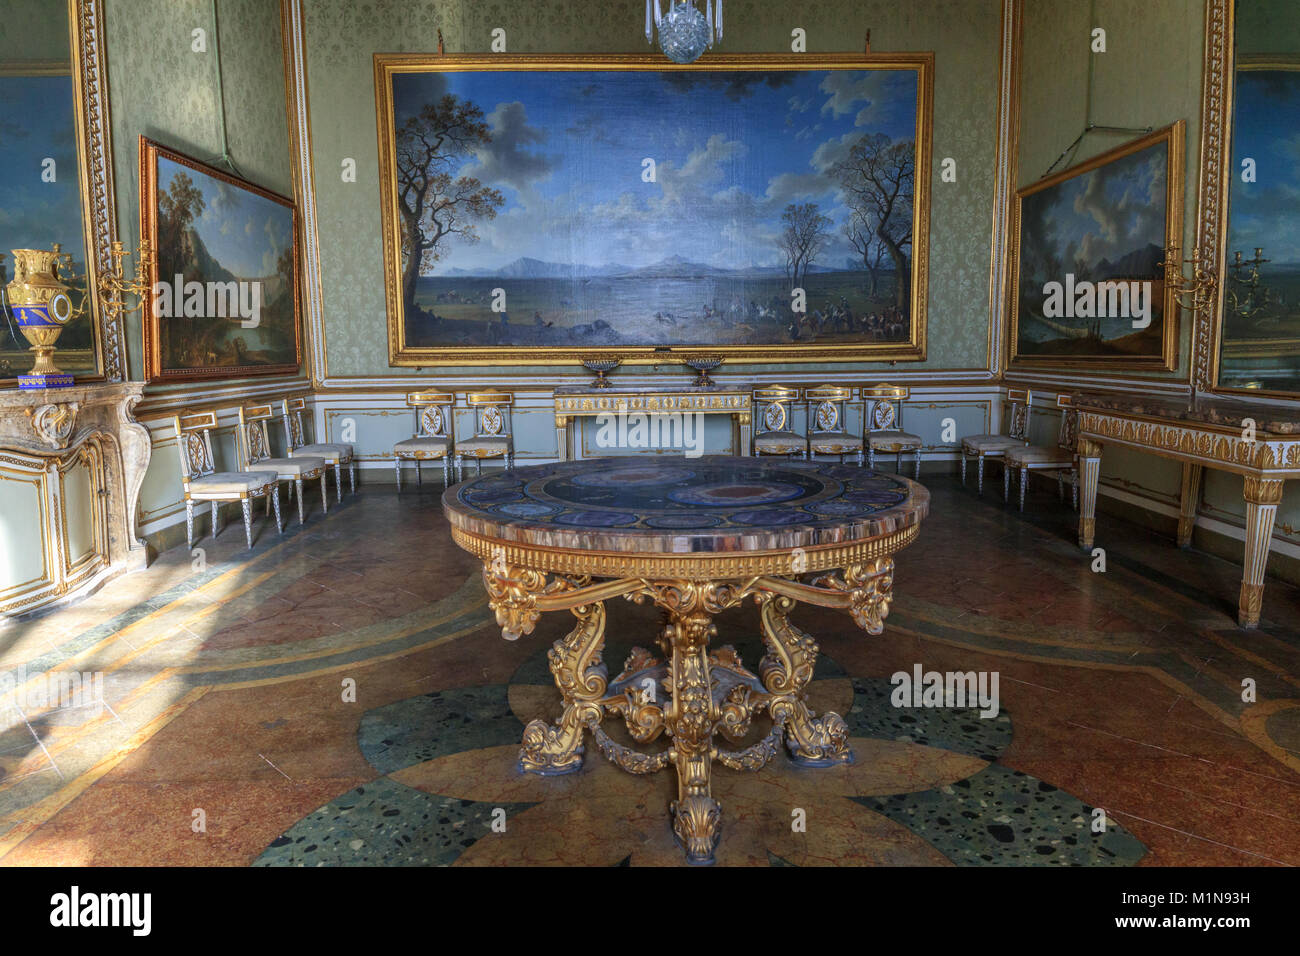 The apartments of the Royal Palace: baroque table (Caserta Royal Palace) Stock Photo